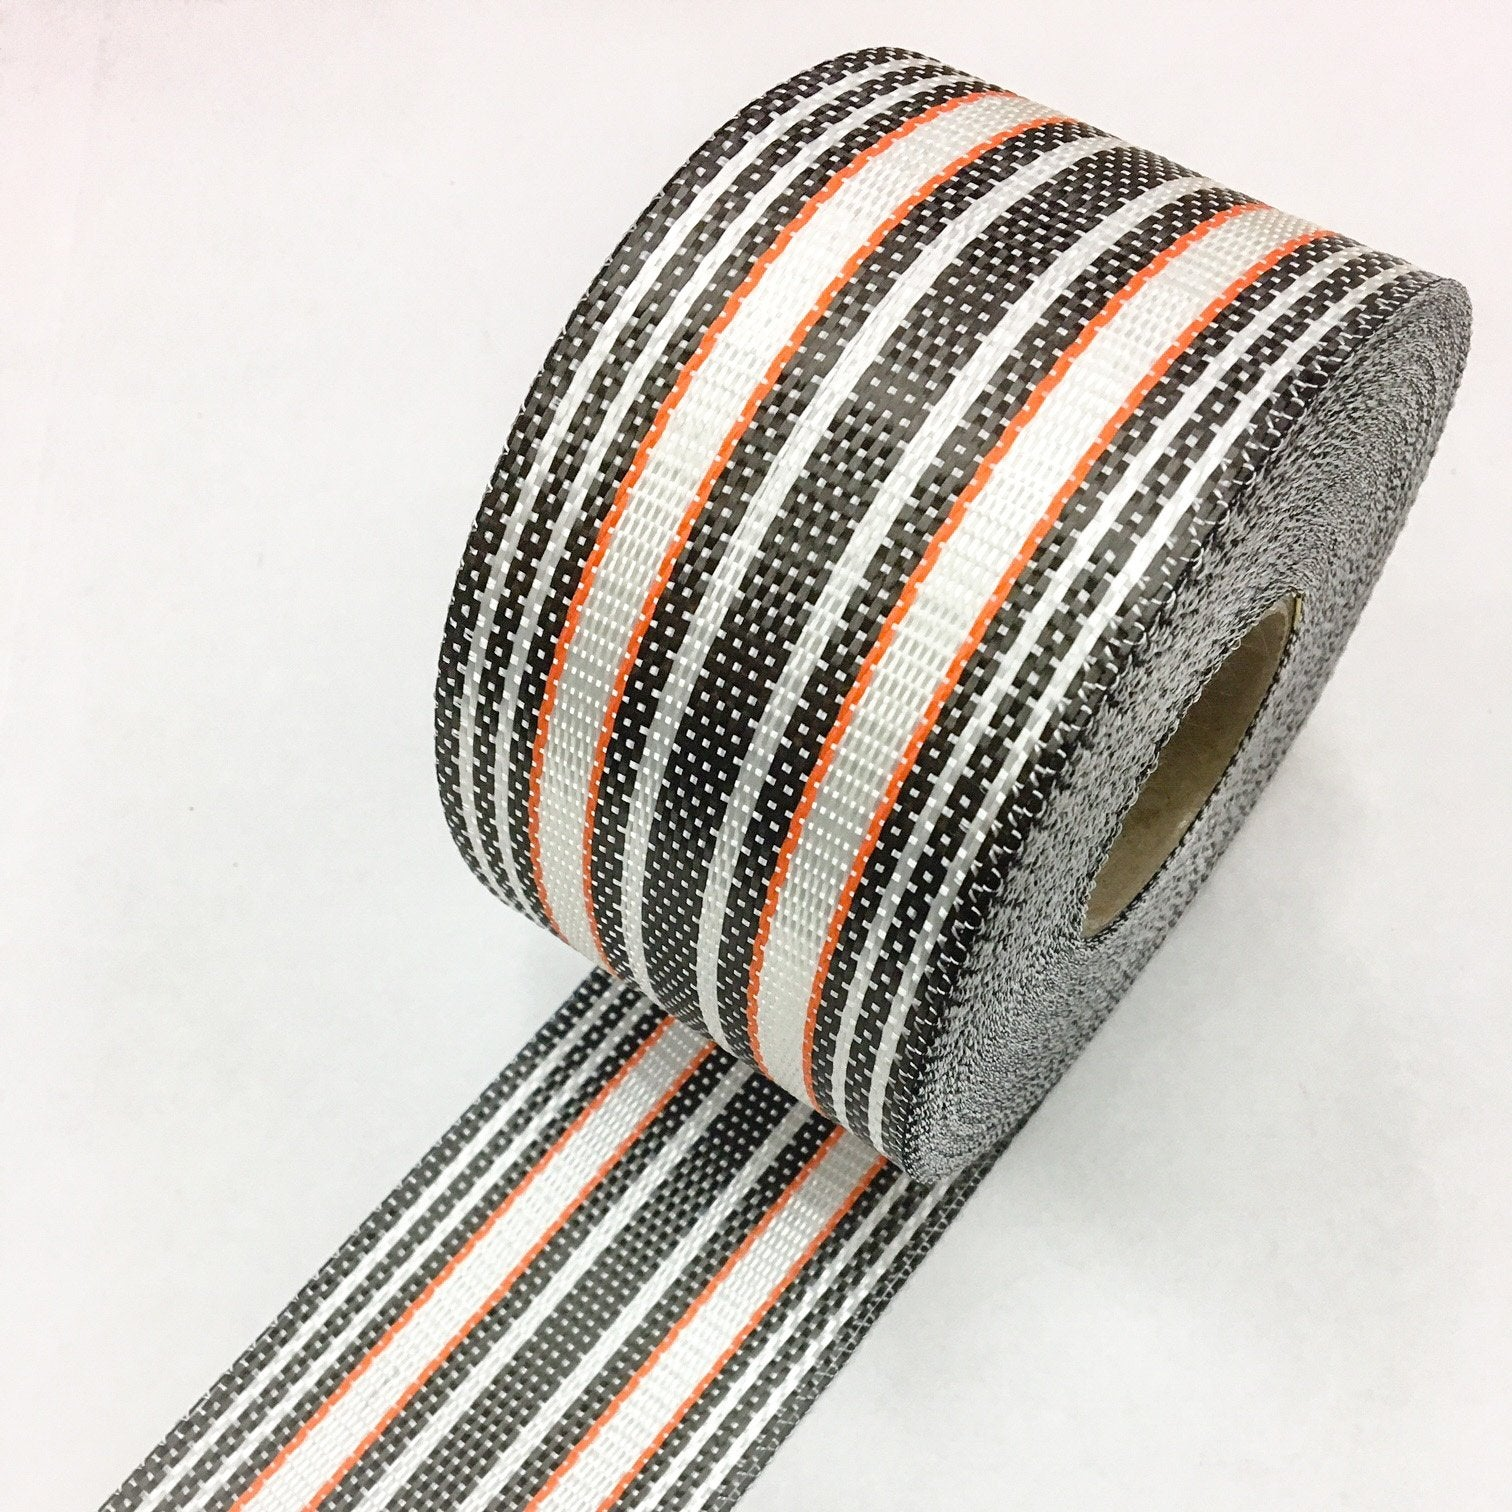 Uni Directional Carbon Poly Rail Tape - Select Colour